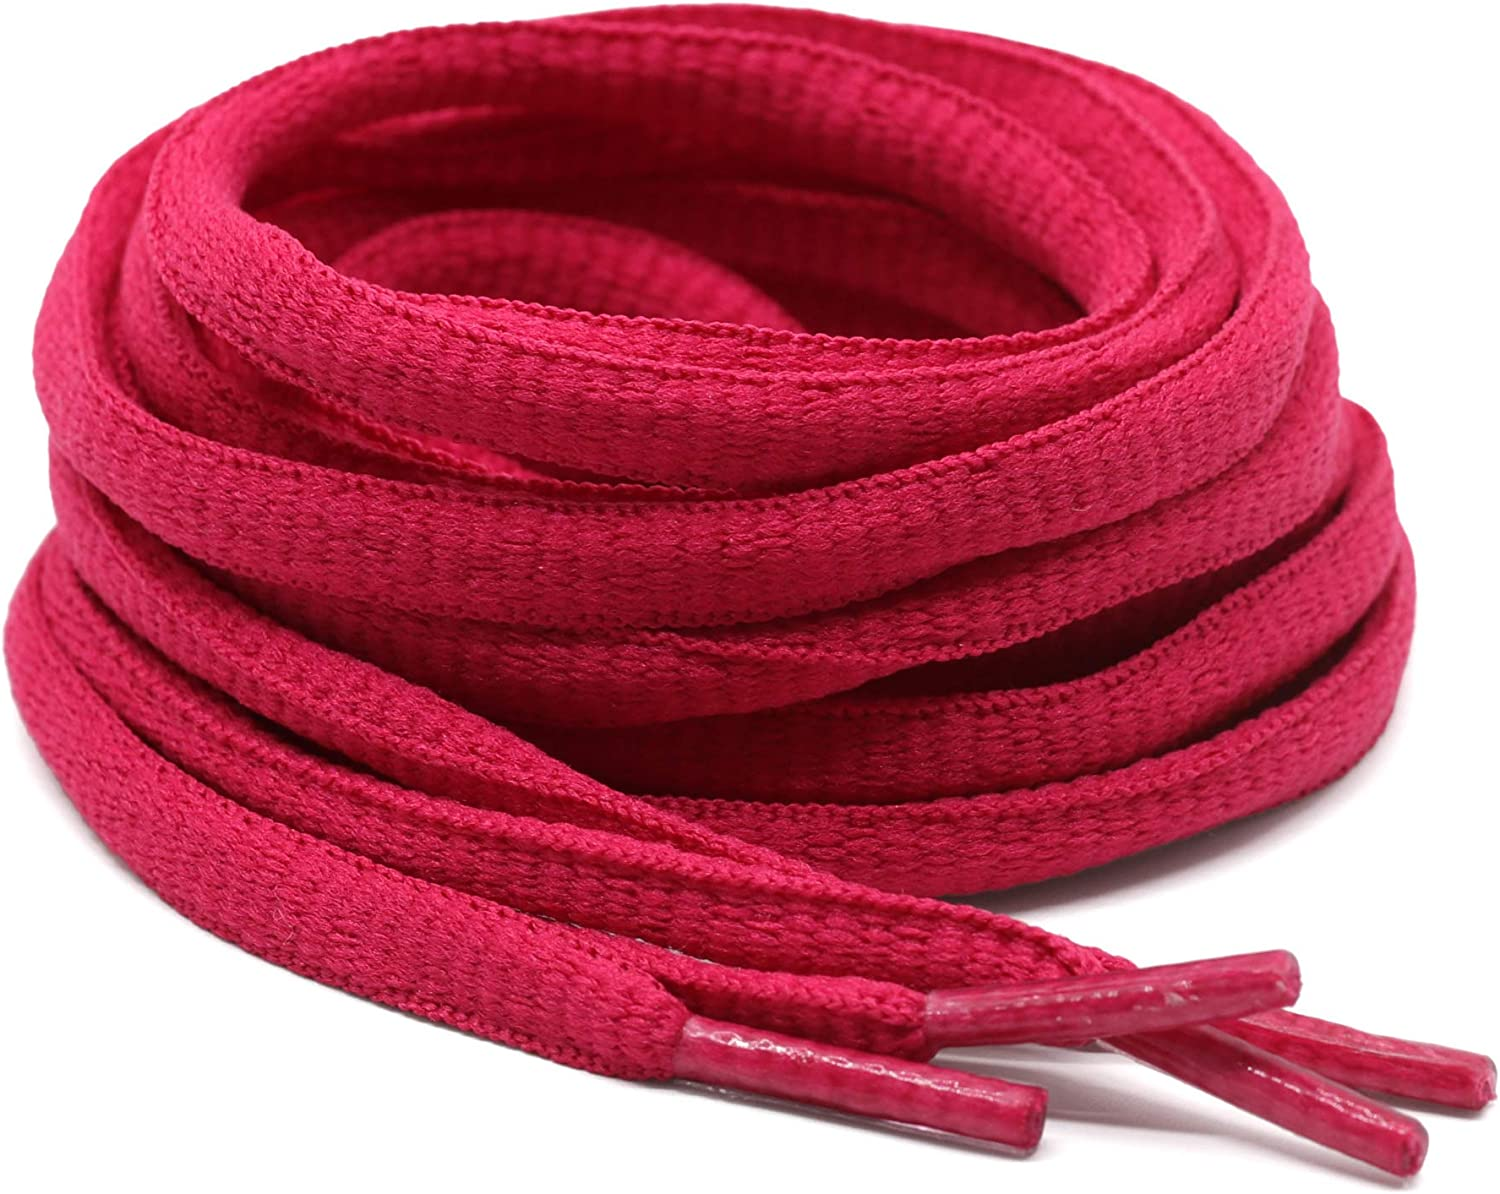 DELELE 2Pair Oval Shoes laces 42 1 Round Inexpensive Half 4